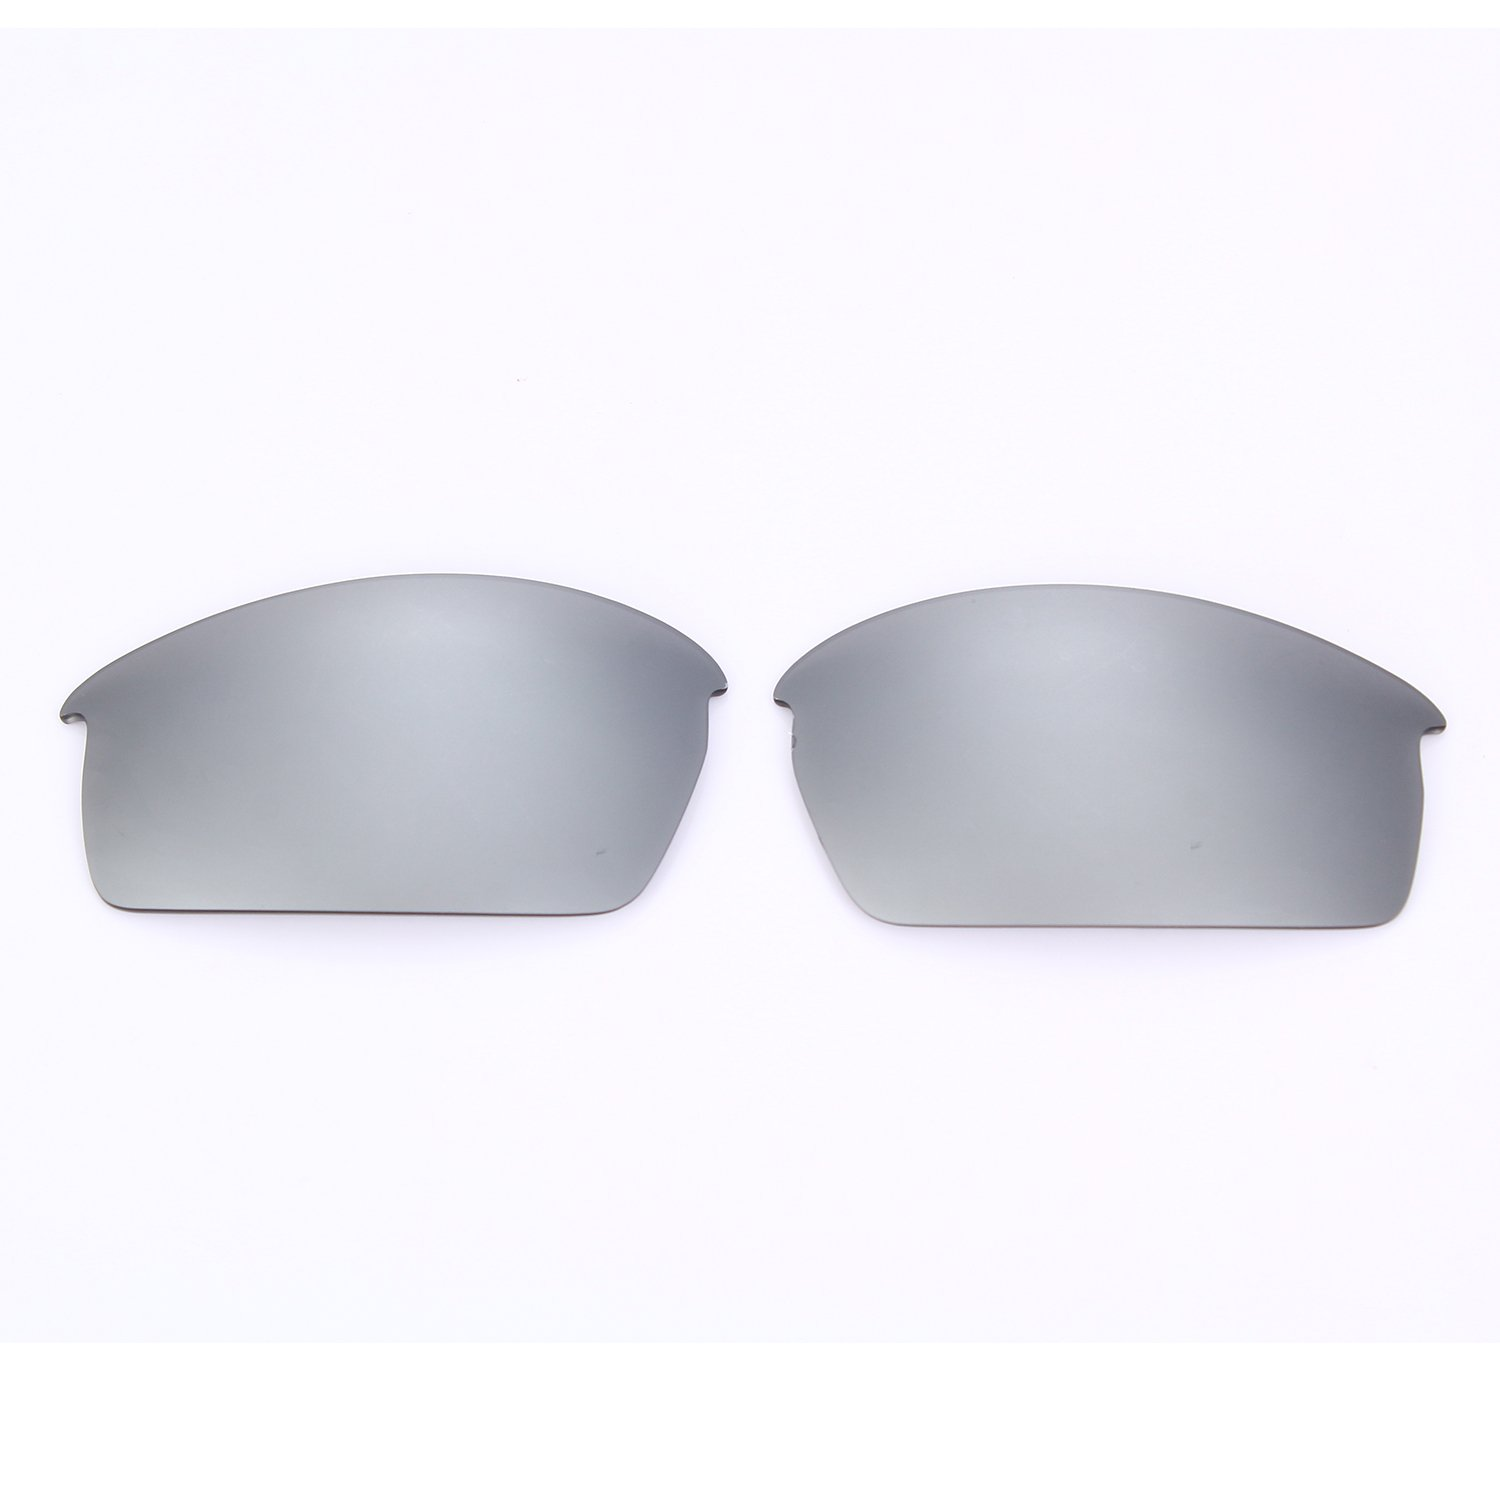 13a12b8176d Amazon.com  Polarized Replacement Lenses for Oakley Bottlecap Sunglasses  (Titanium) NicelyFit  Clothing